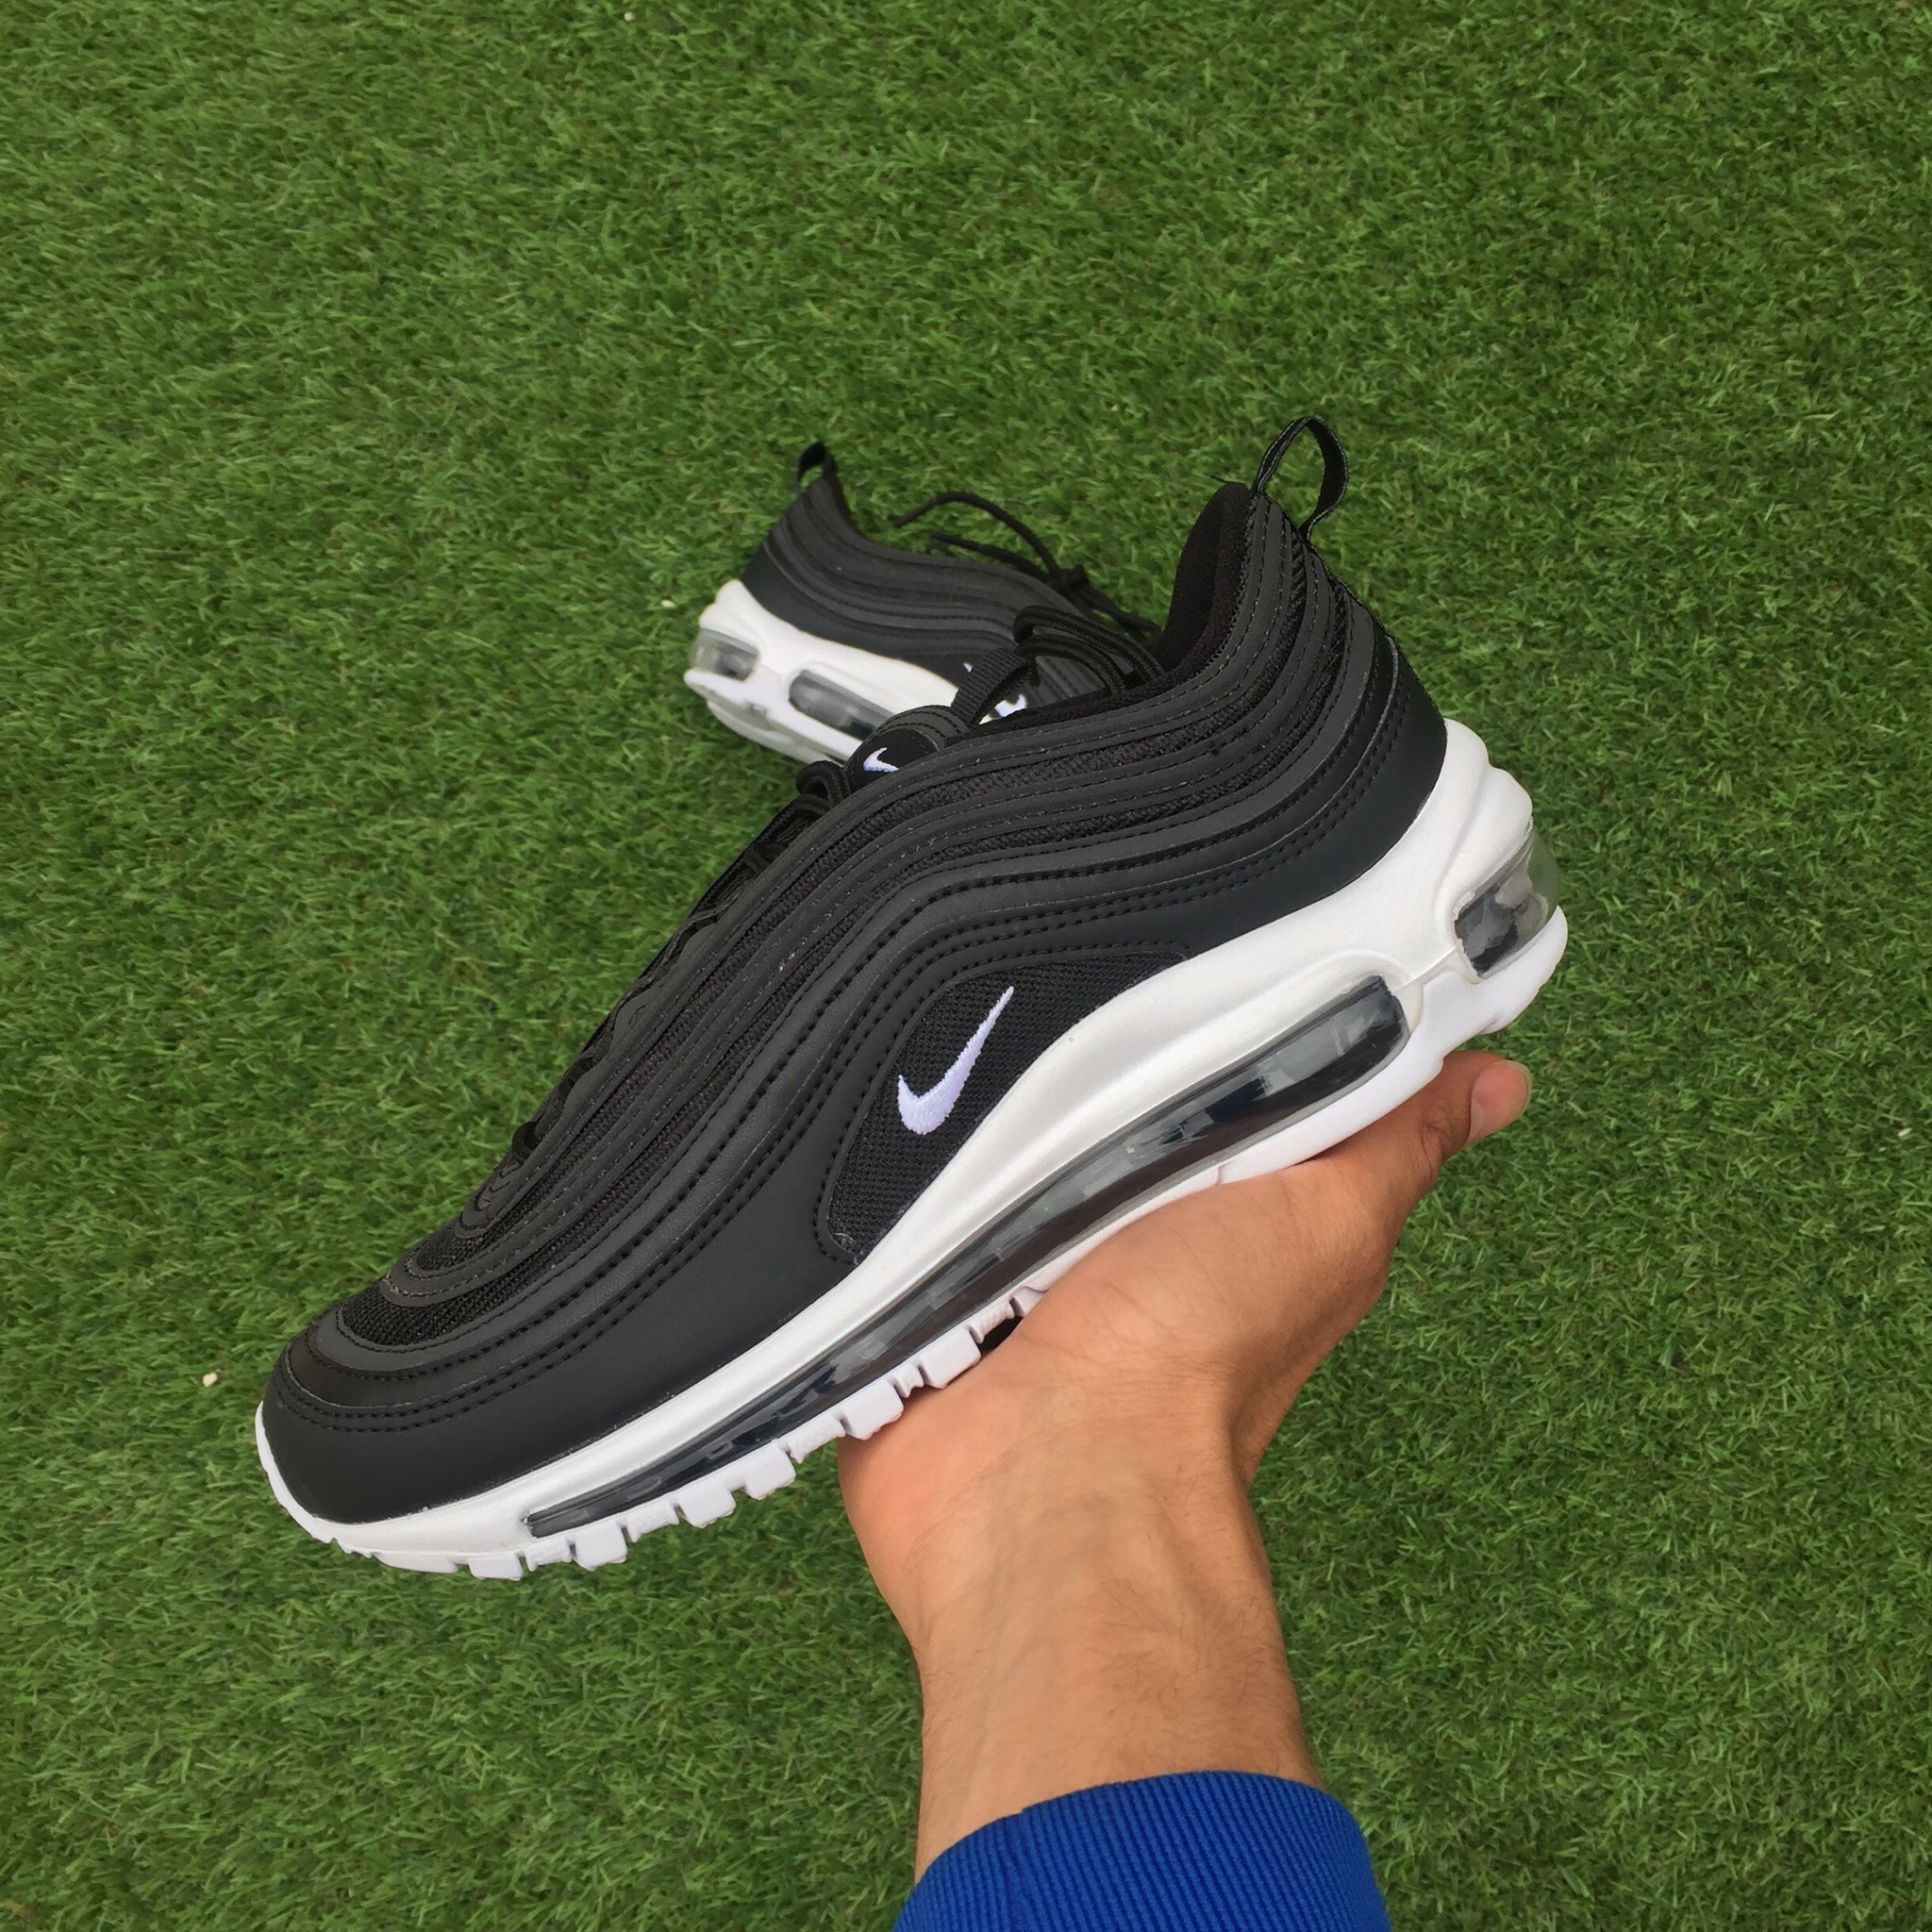 Kappa x Nike Air Max 97 YouTube